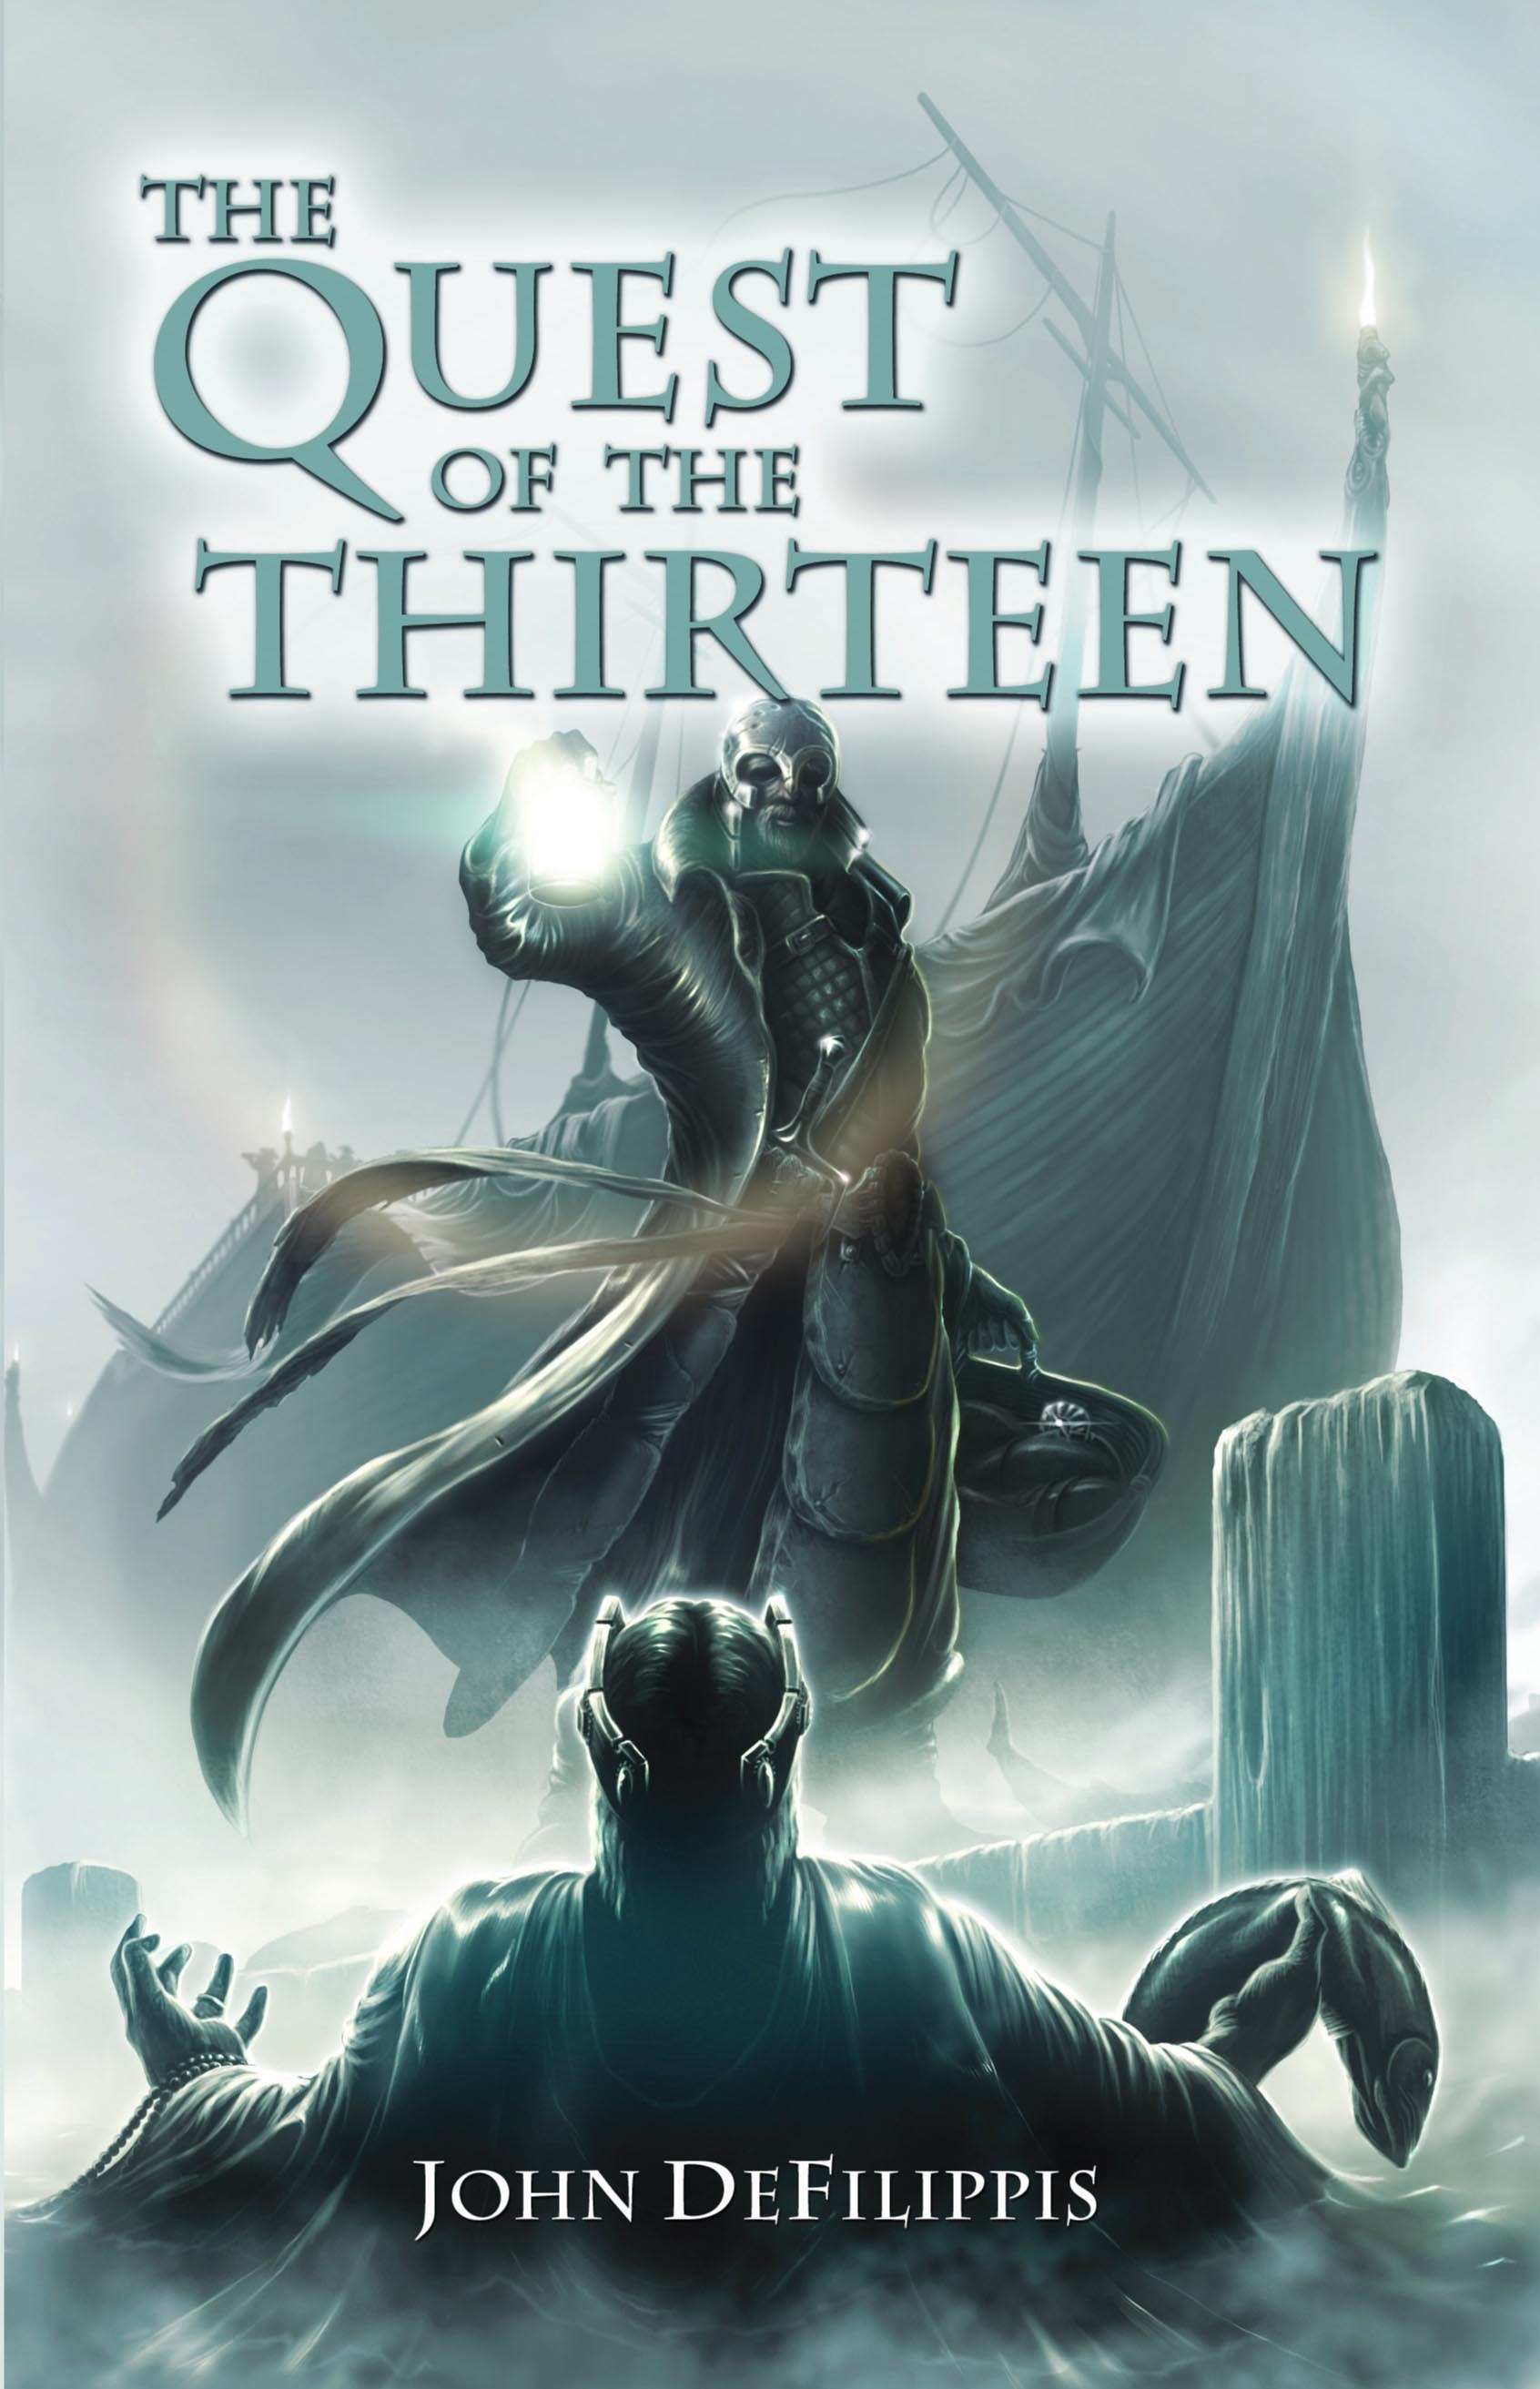 The Quest of the Thirteen